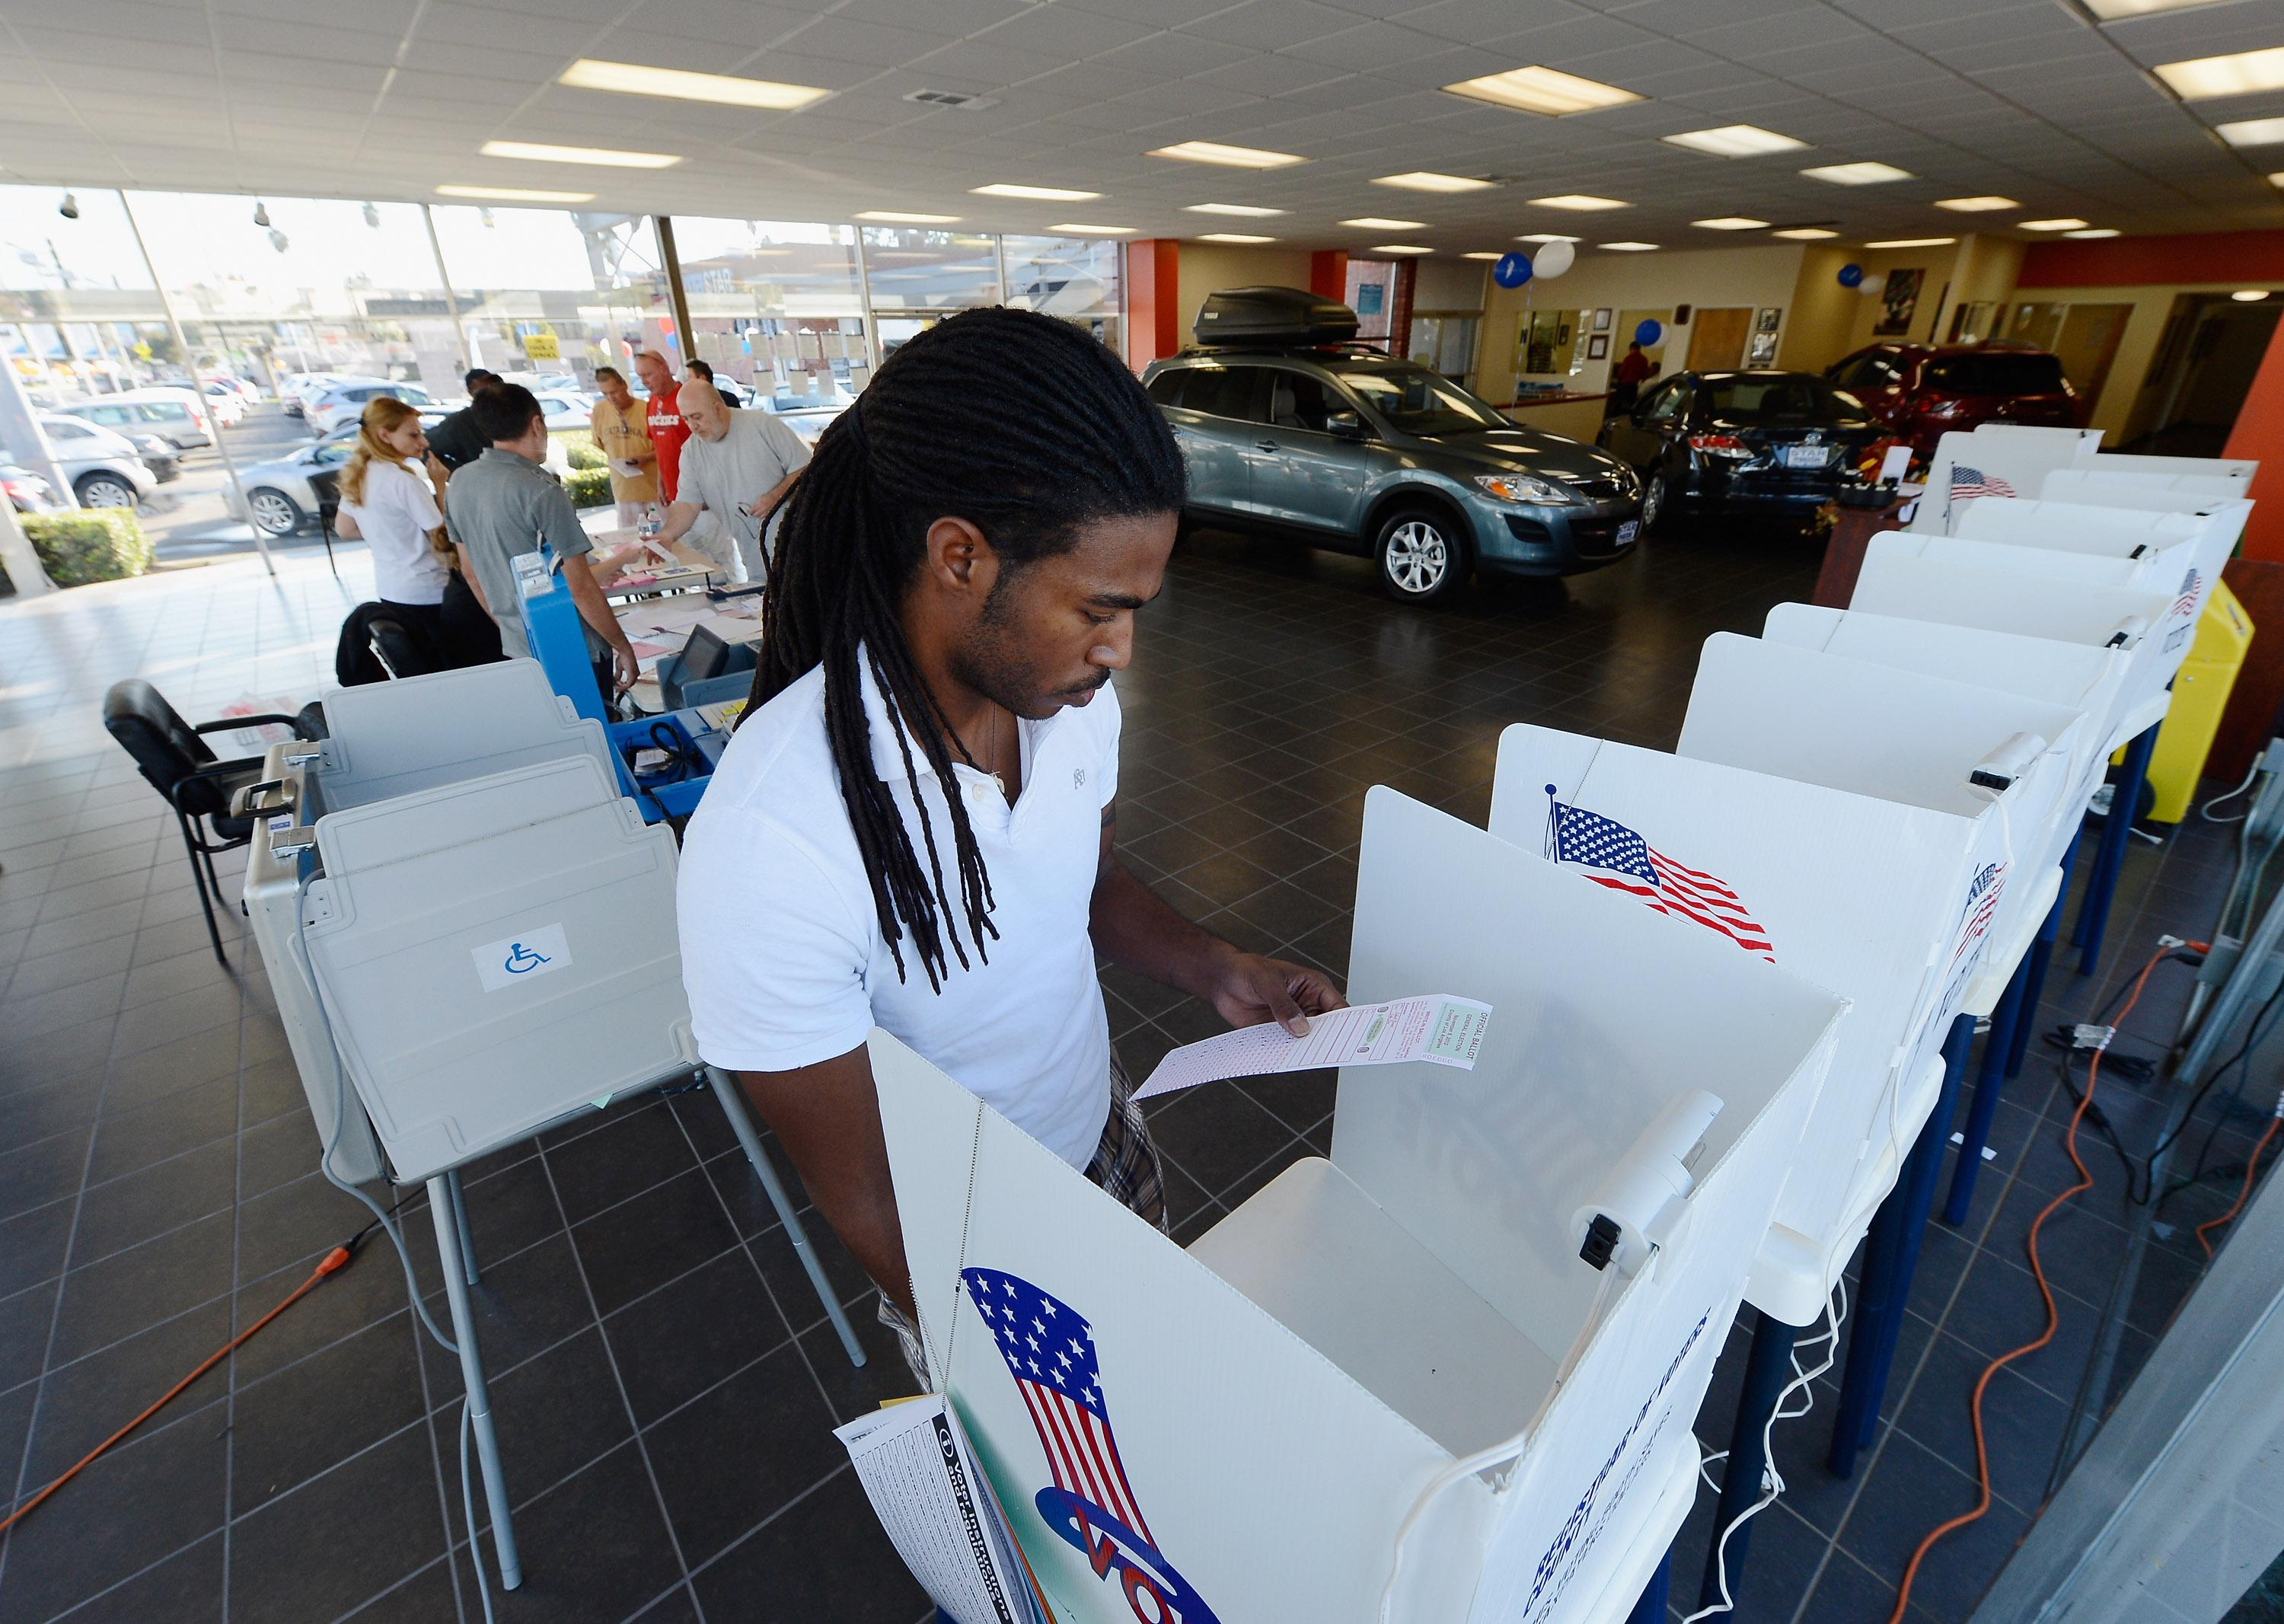 U.S. Citizens Head To The Polls To Vote In Presidential Election